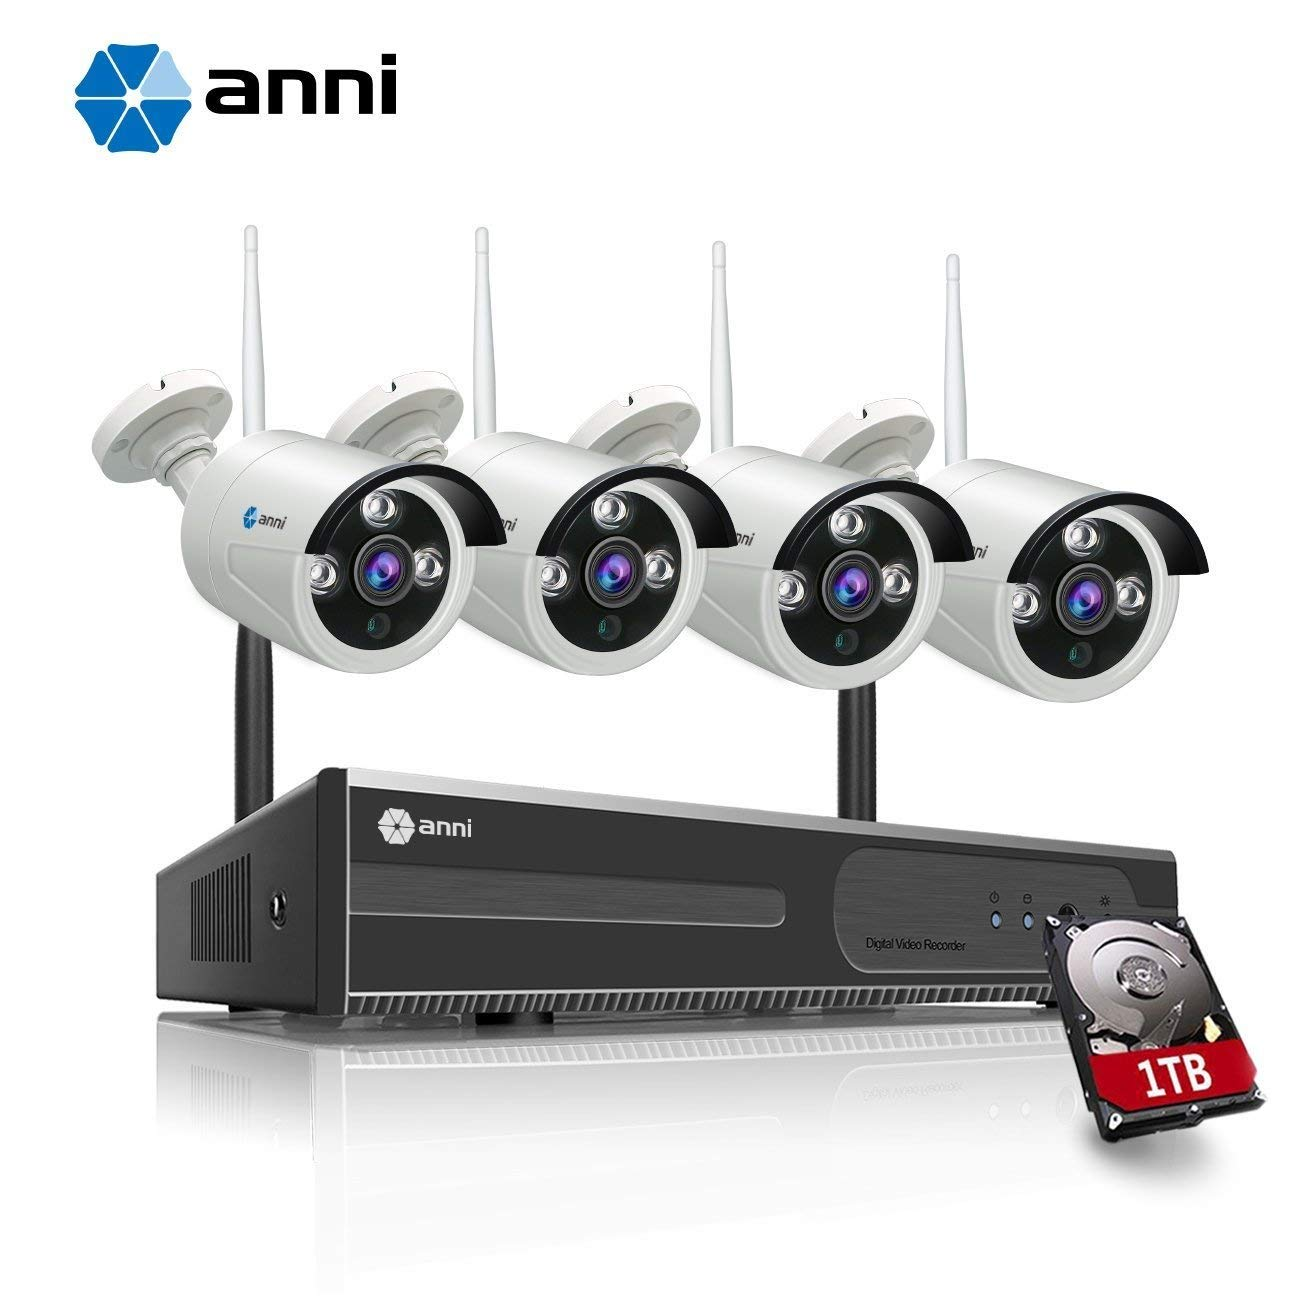 anni 4CH 720P AHD Wireless Security Surveillance Camera, WiFi NVR Kit and (4) 1.0MP Megapixel Wireless Indoor Outdoor Bullet IP Cameras, P2P, 65ft Night Vision with 1TB Hard Drive